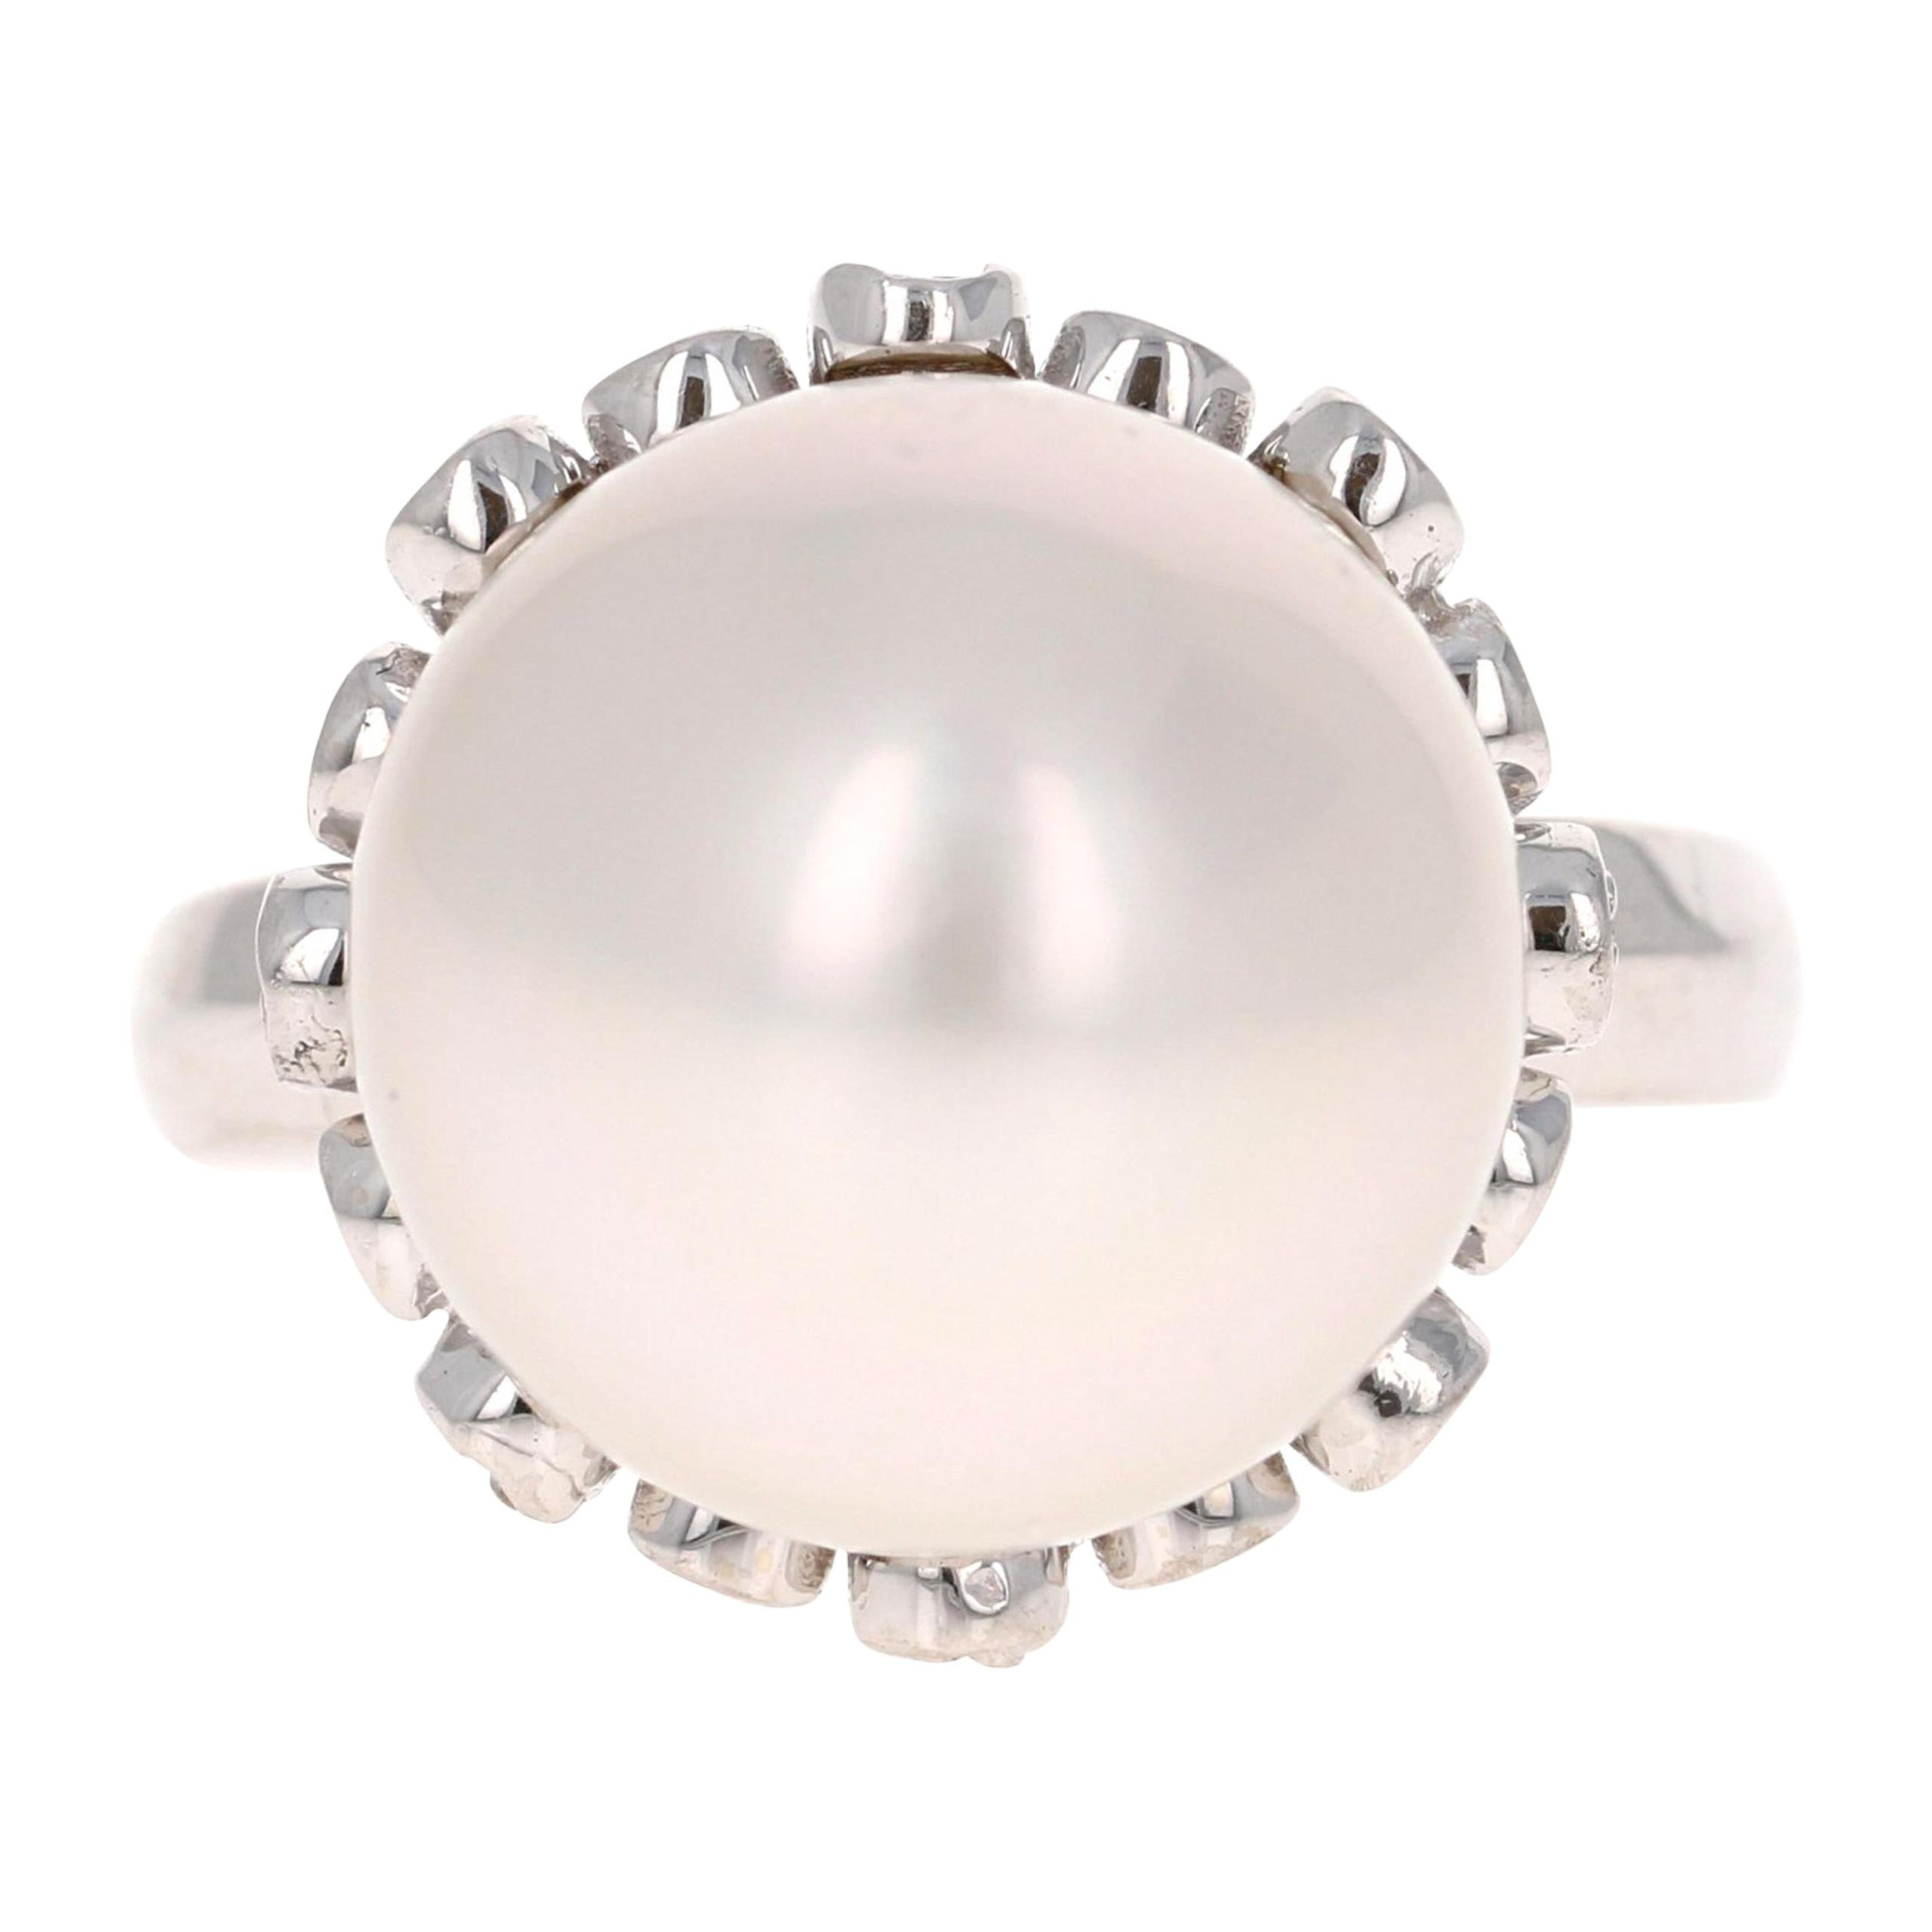 South Sea Pearl and Diamond 14 Karat White Gold Cocktail Ring